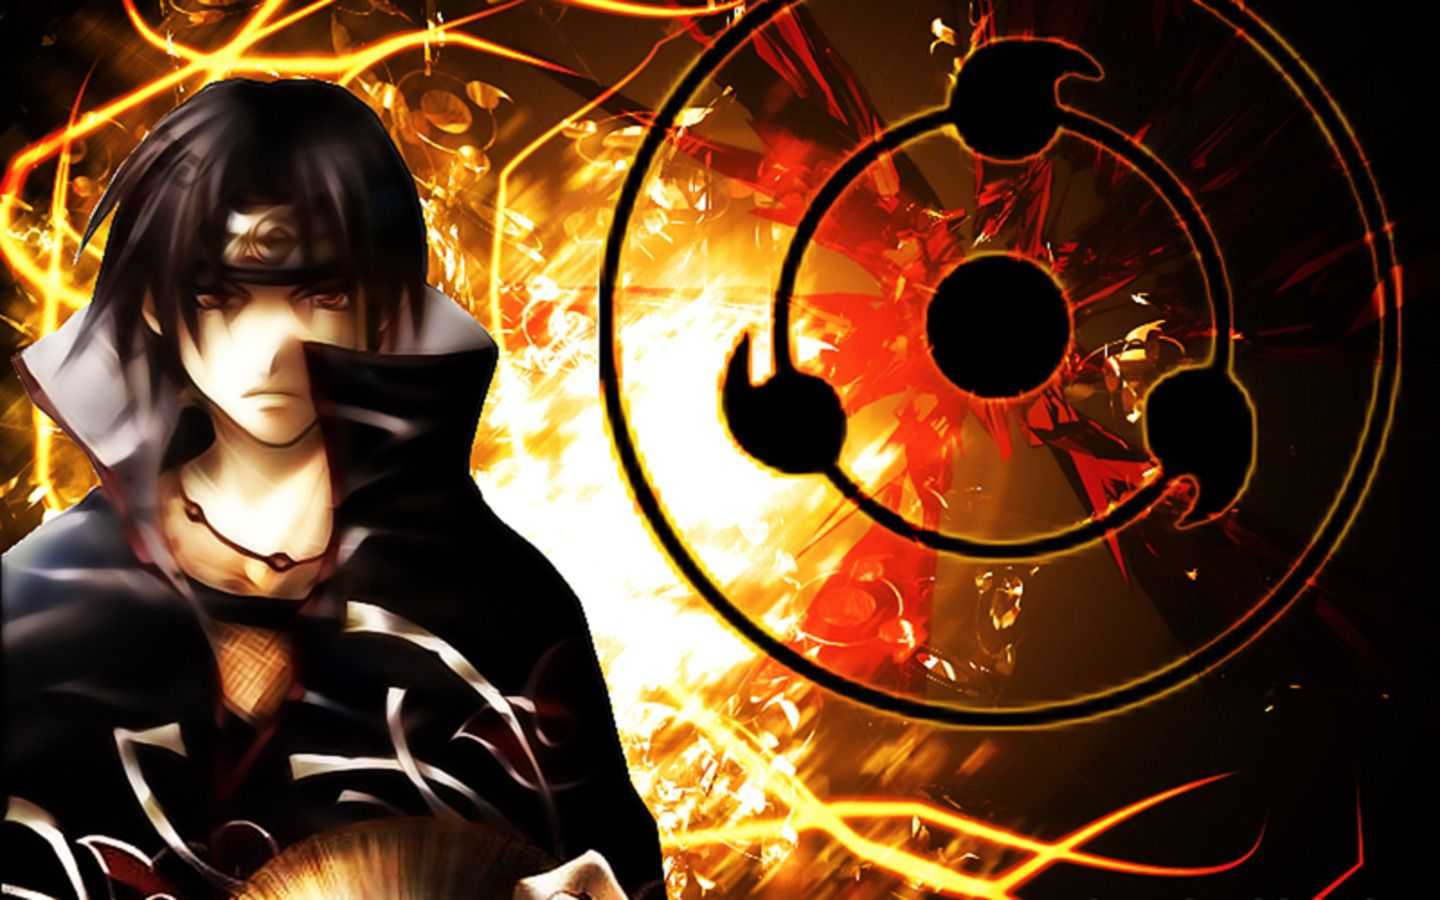 Download Free 15 Naruto Wallpaper Free Hd Wallpapers Part 2 In